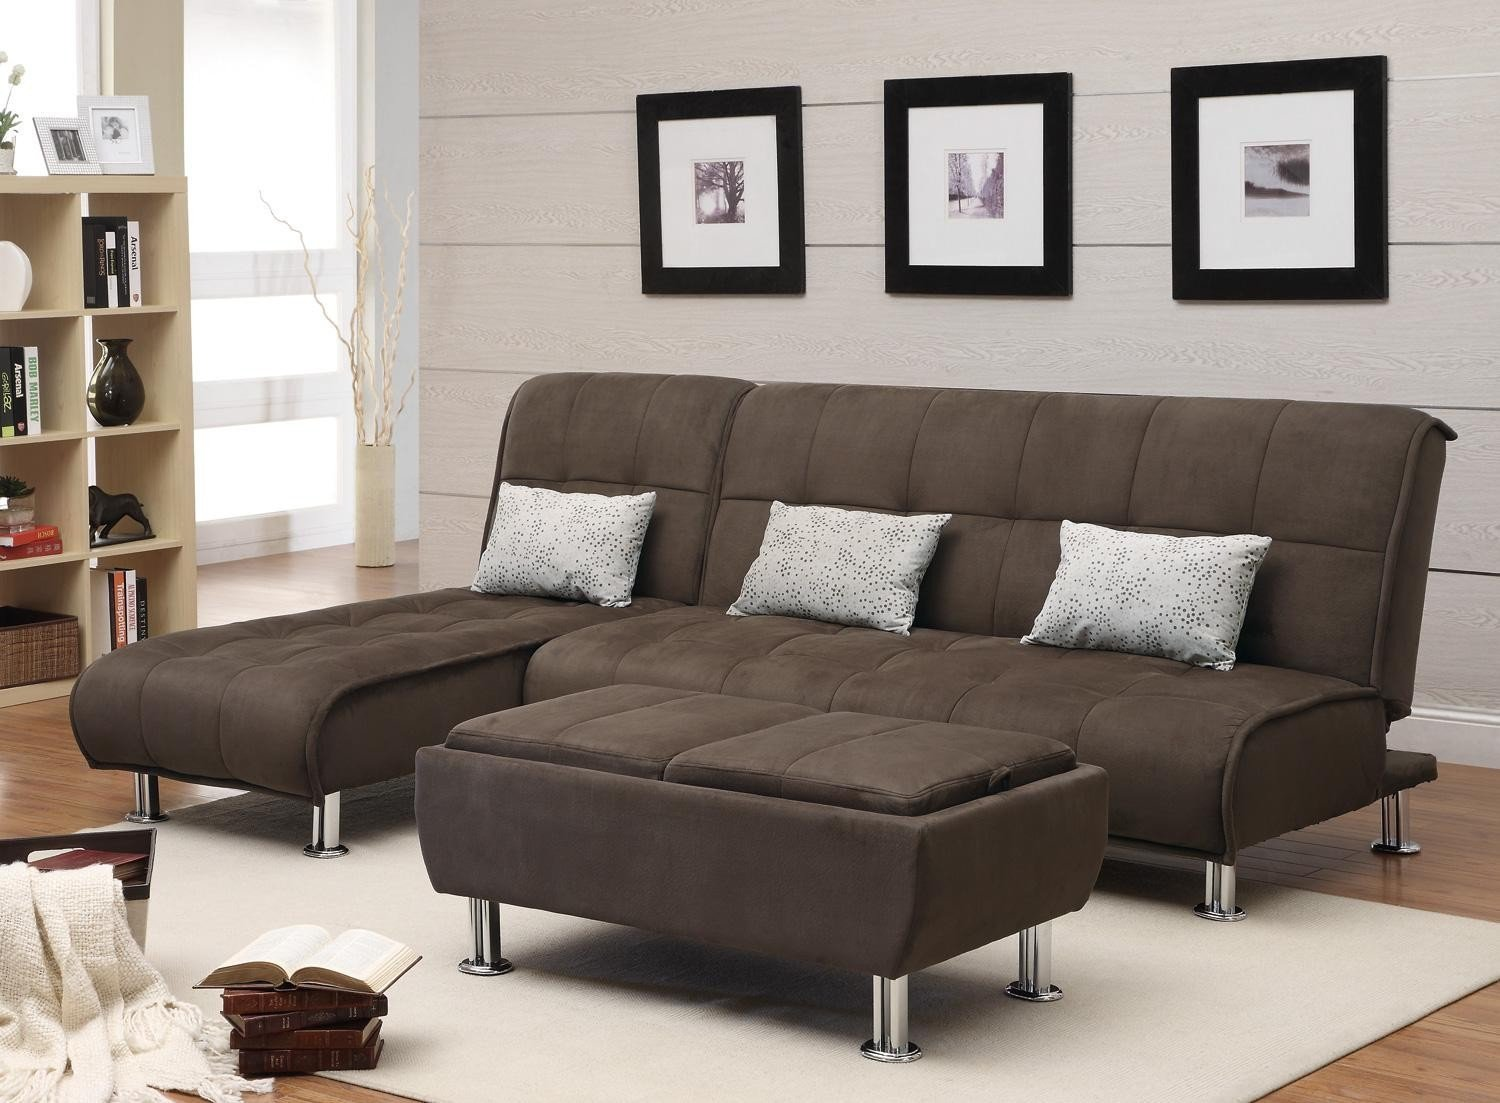 Comfortable Couches Living Room Beautiful Most fortable sofas